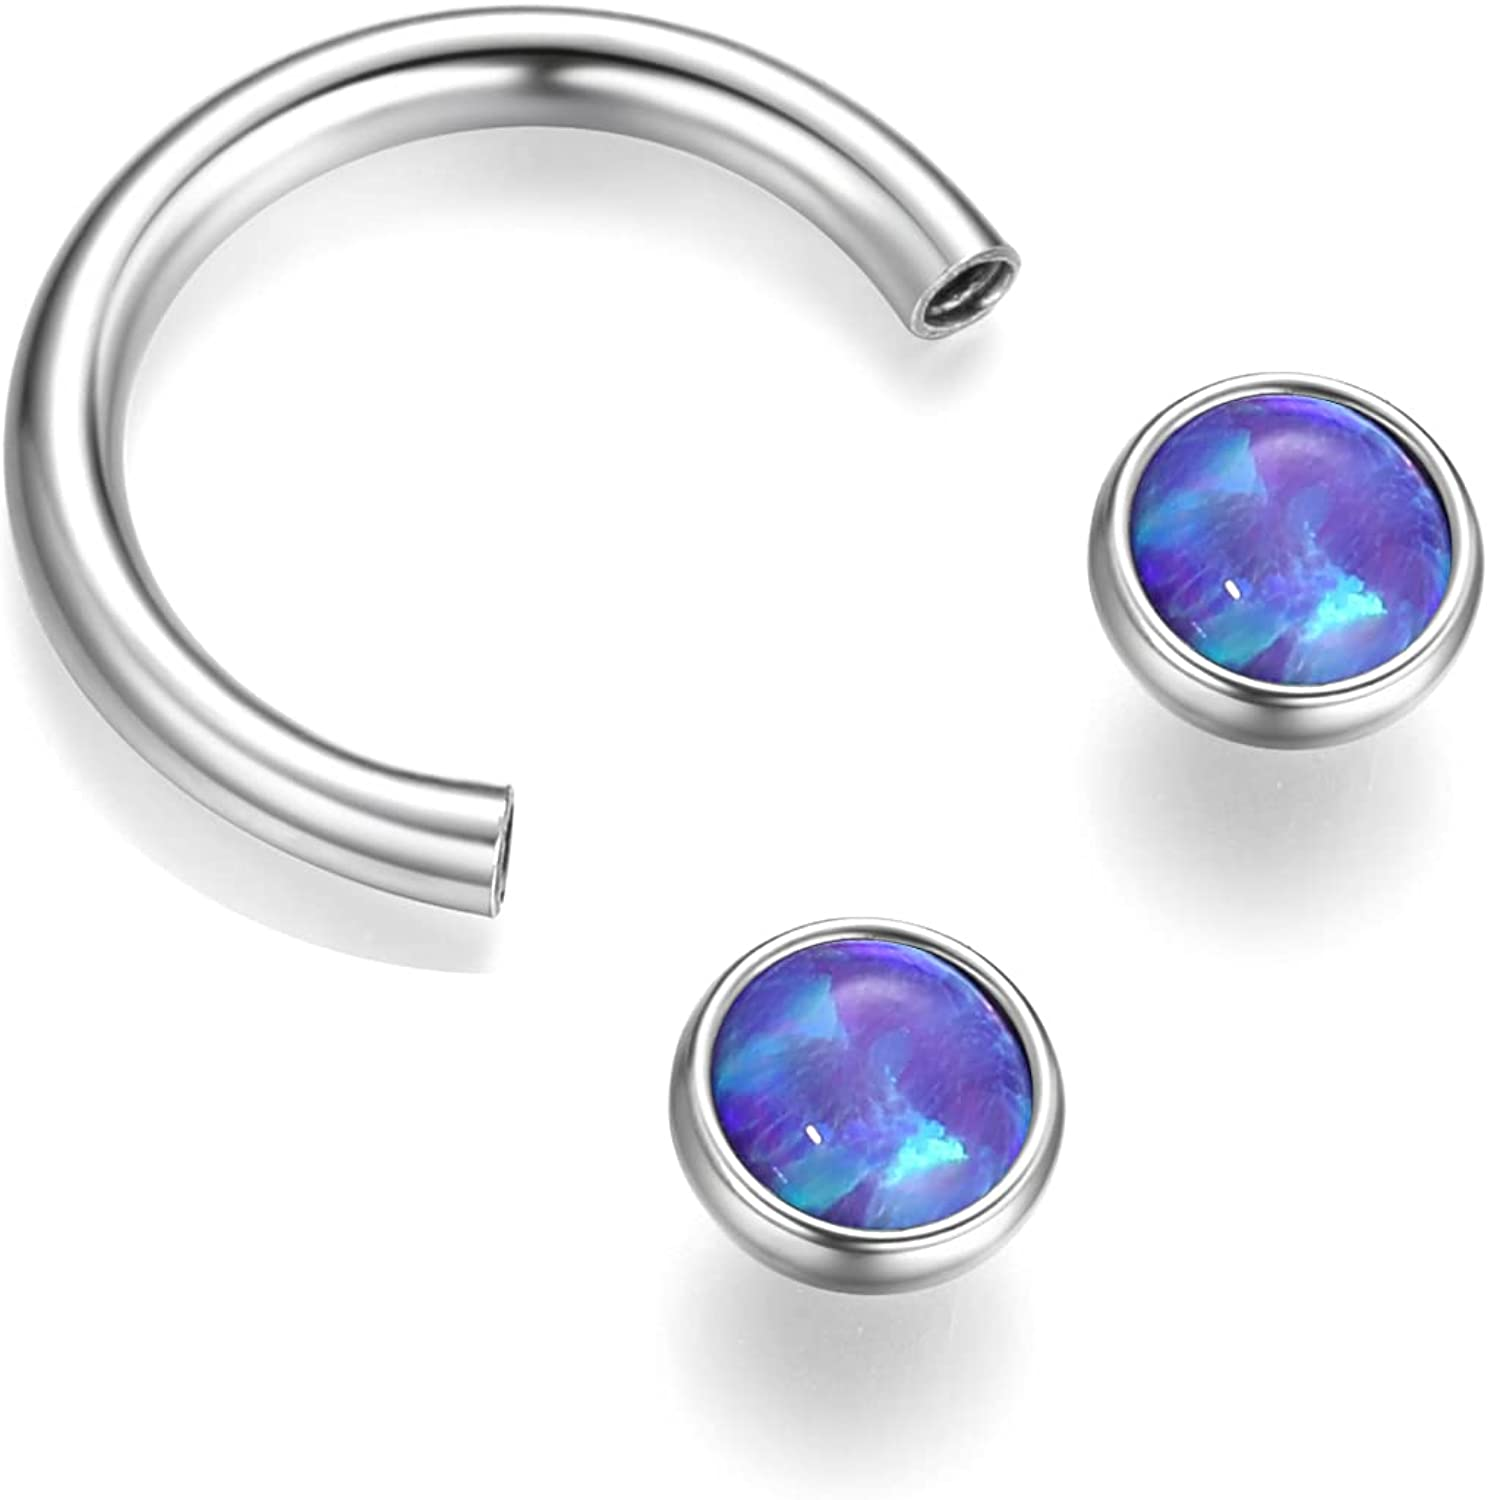 Lantine Horseshoe Opal Septum Ring Stainless Steel 16g 8mm Circular Barbell Daith Earring for Nose Cartilage Lip Tragus Helix Piercing